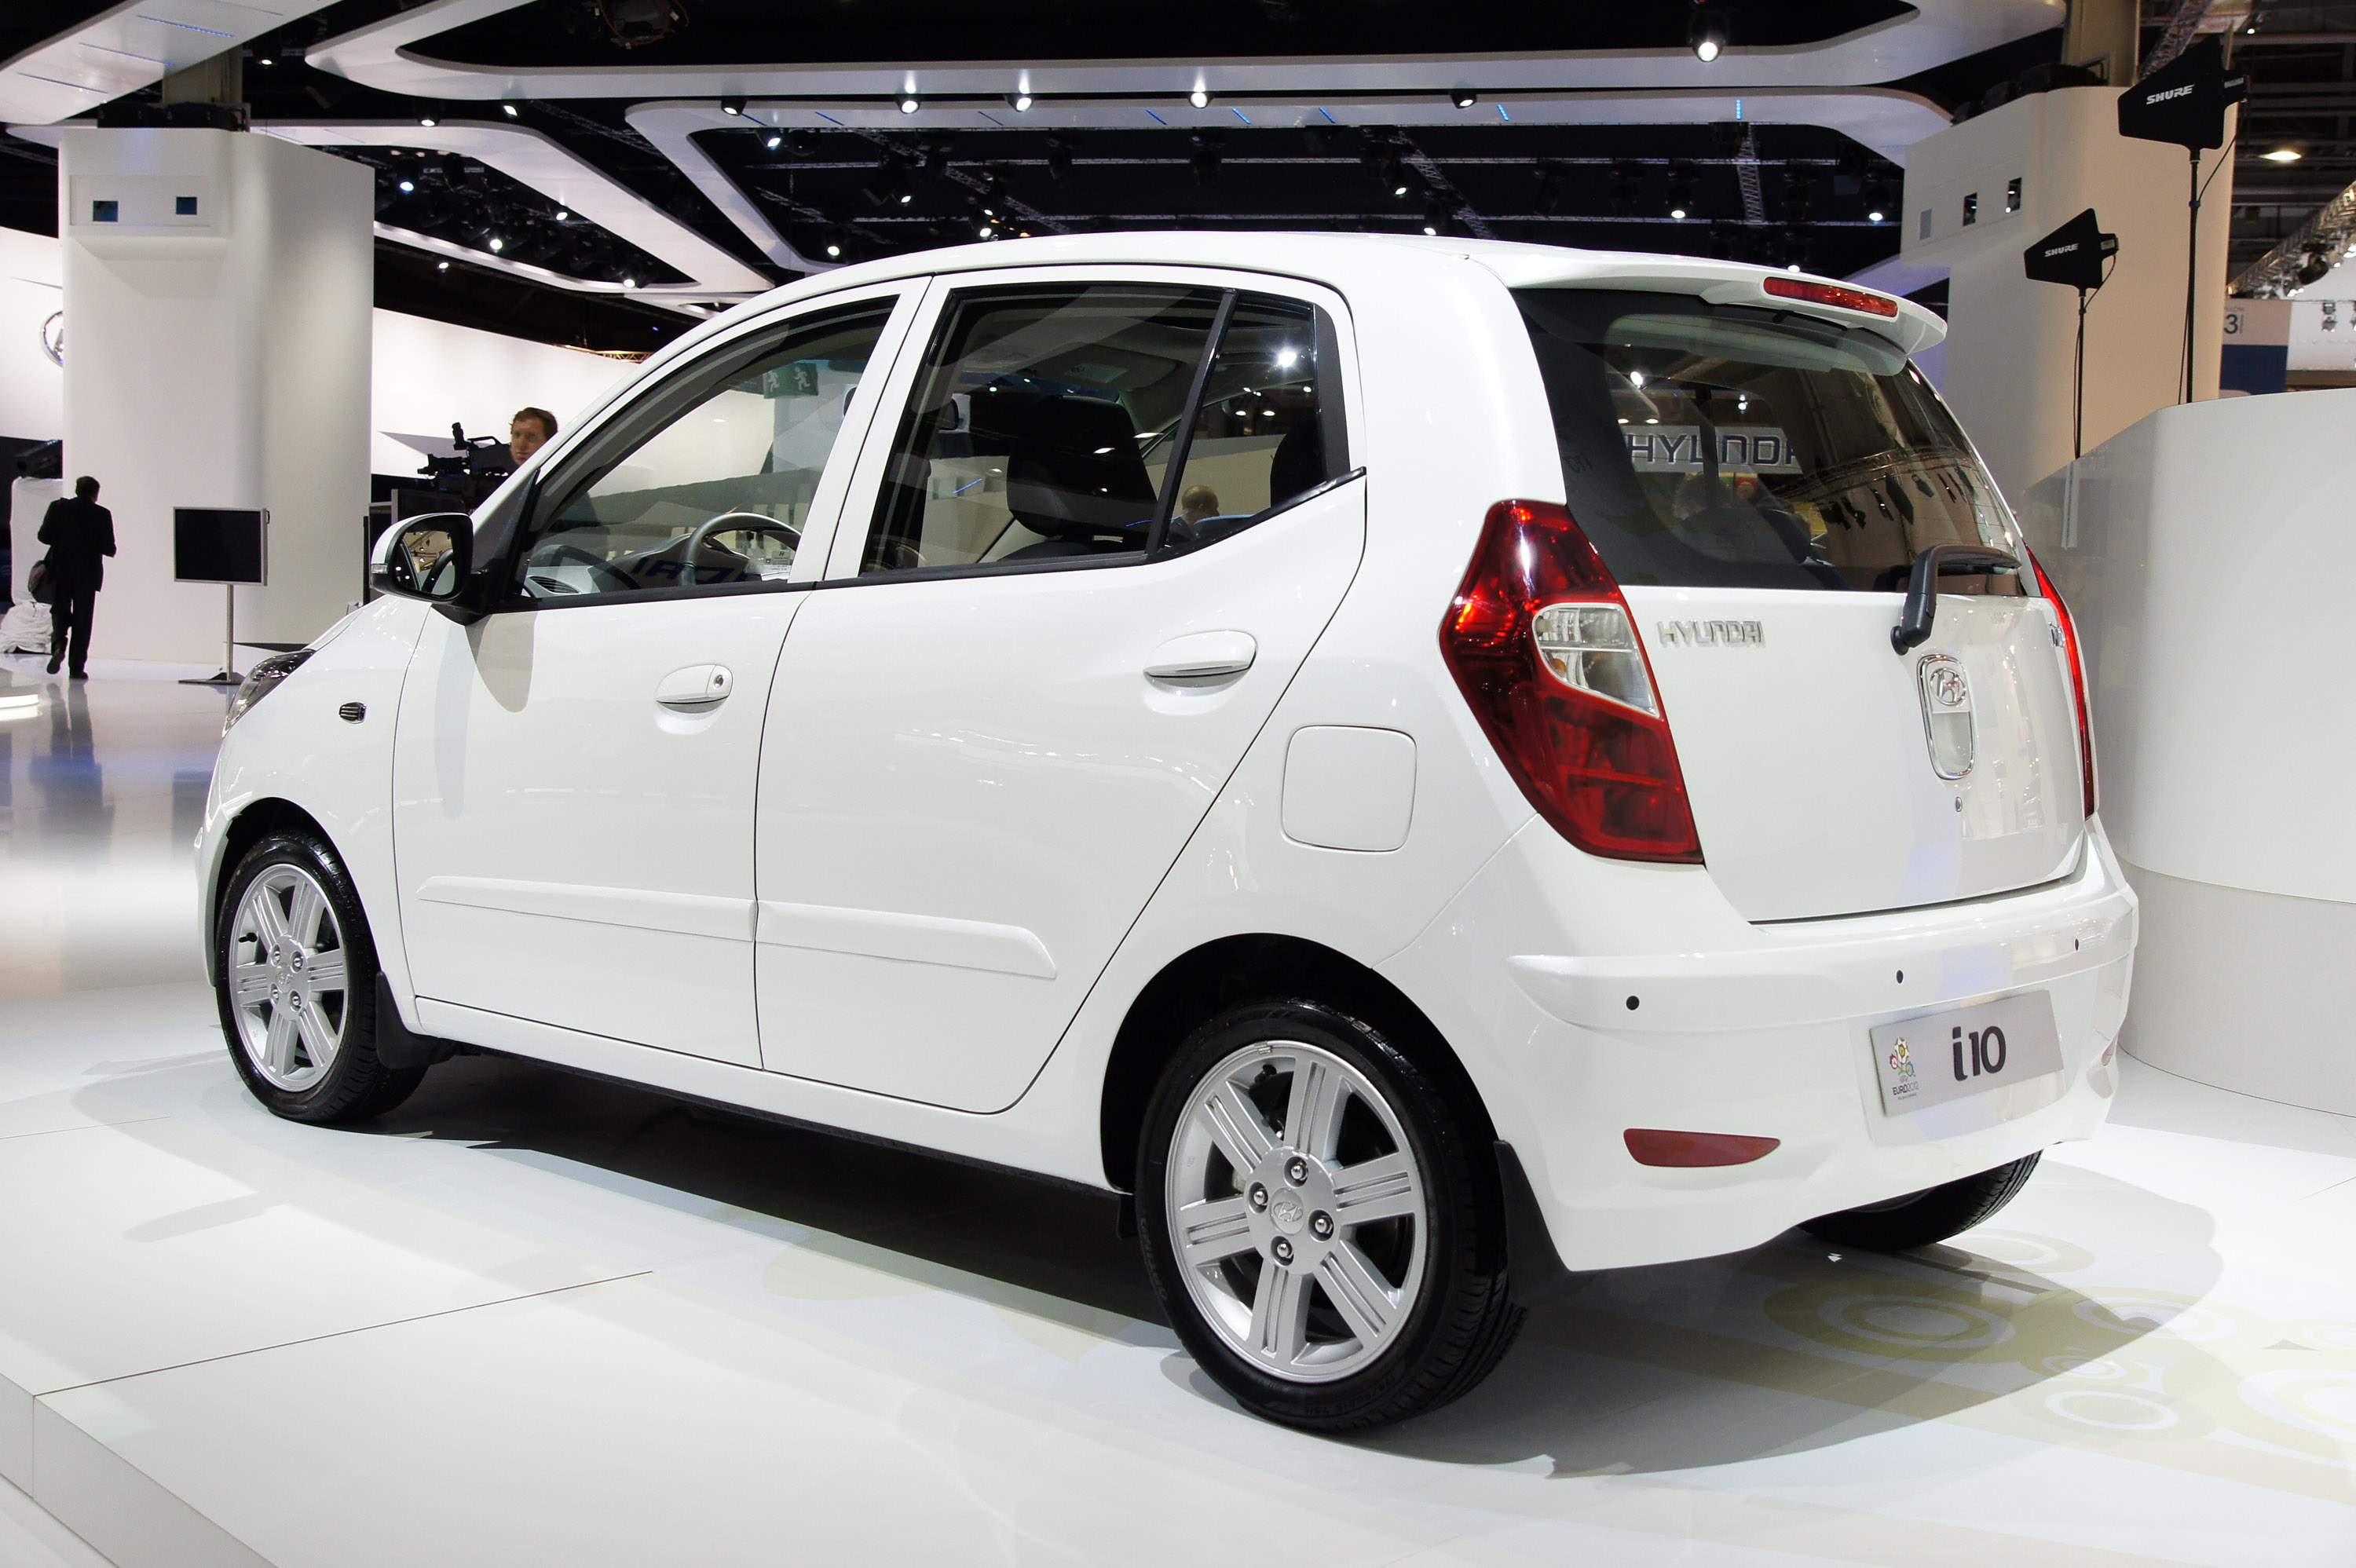 Hyundai i10 Paris 2010 - Picture 43229